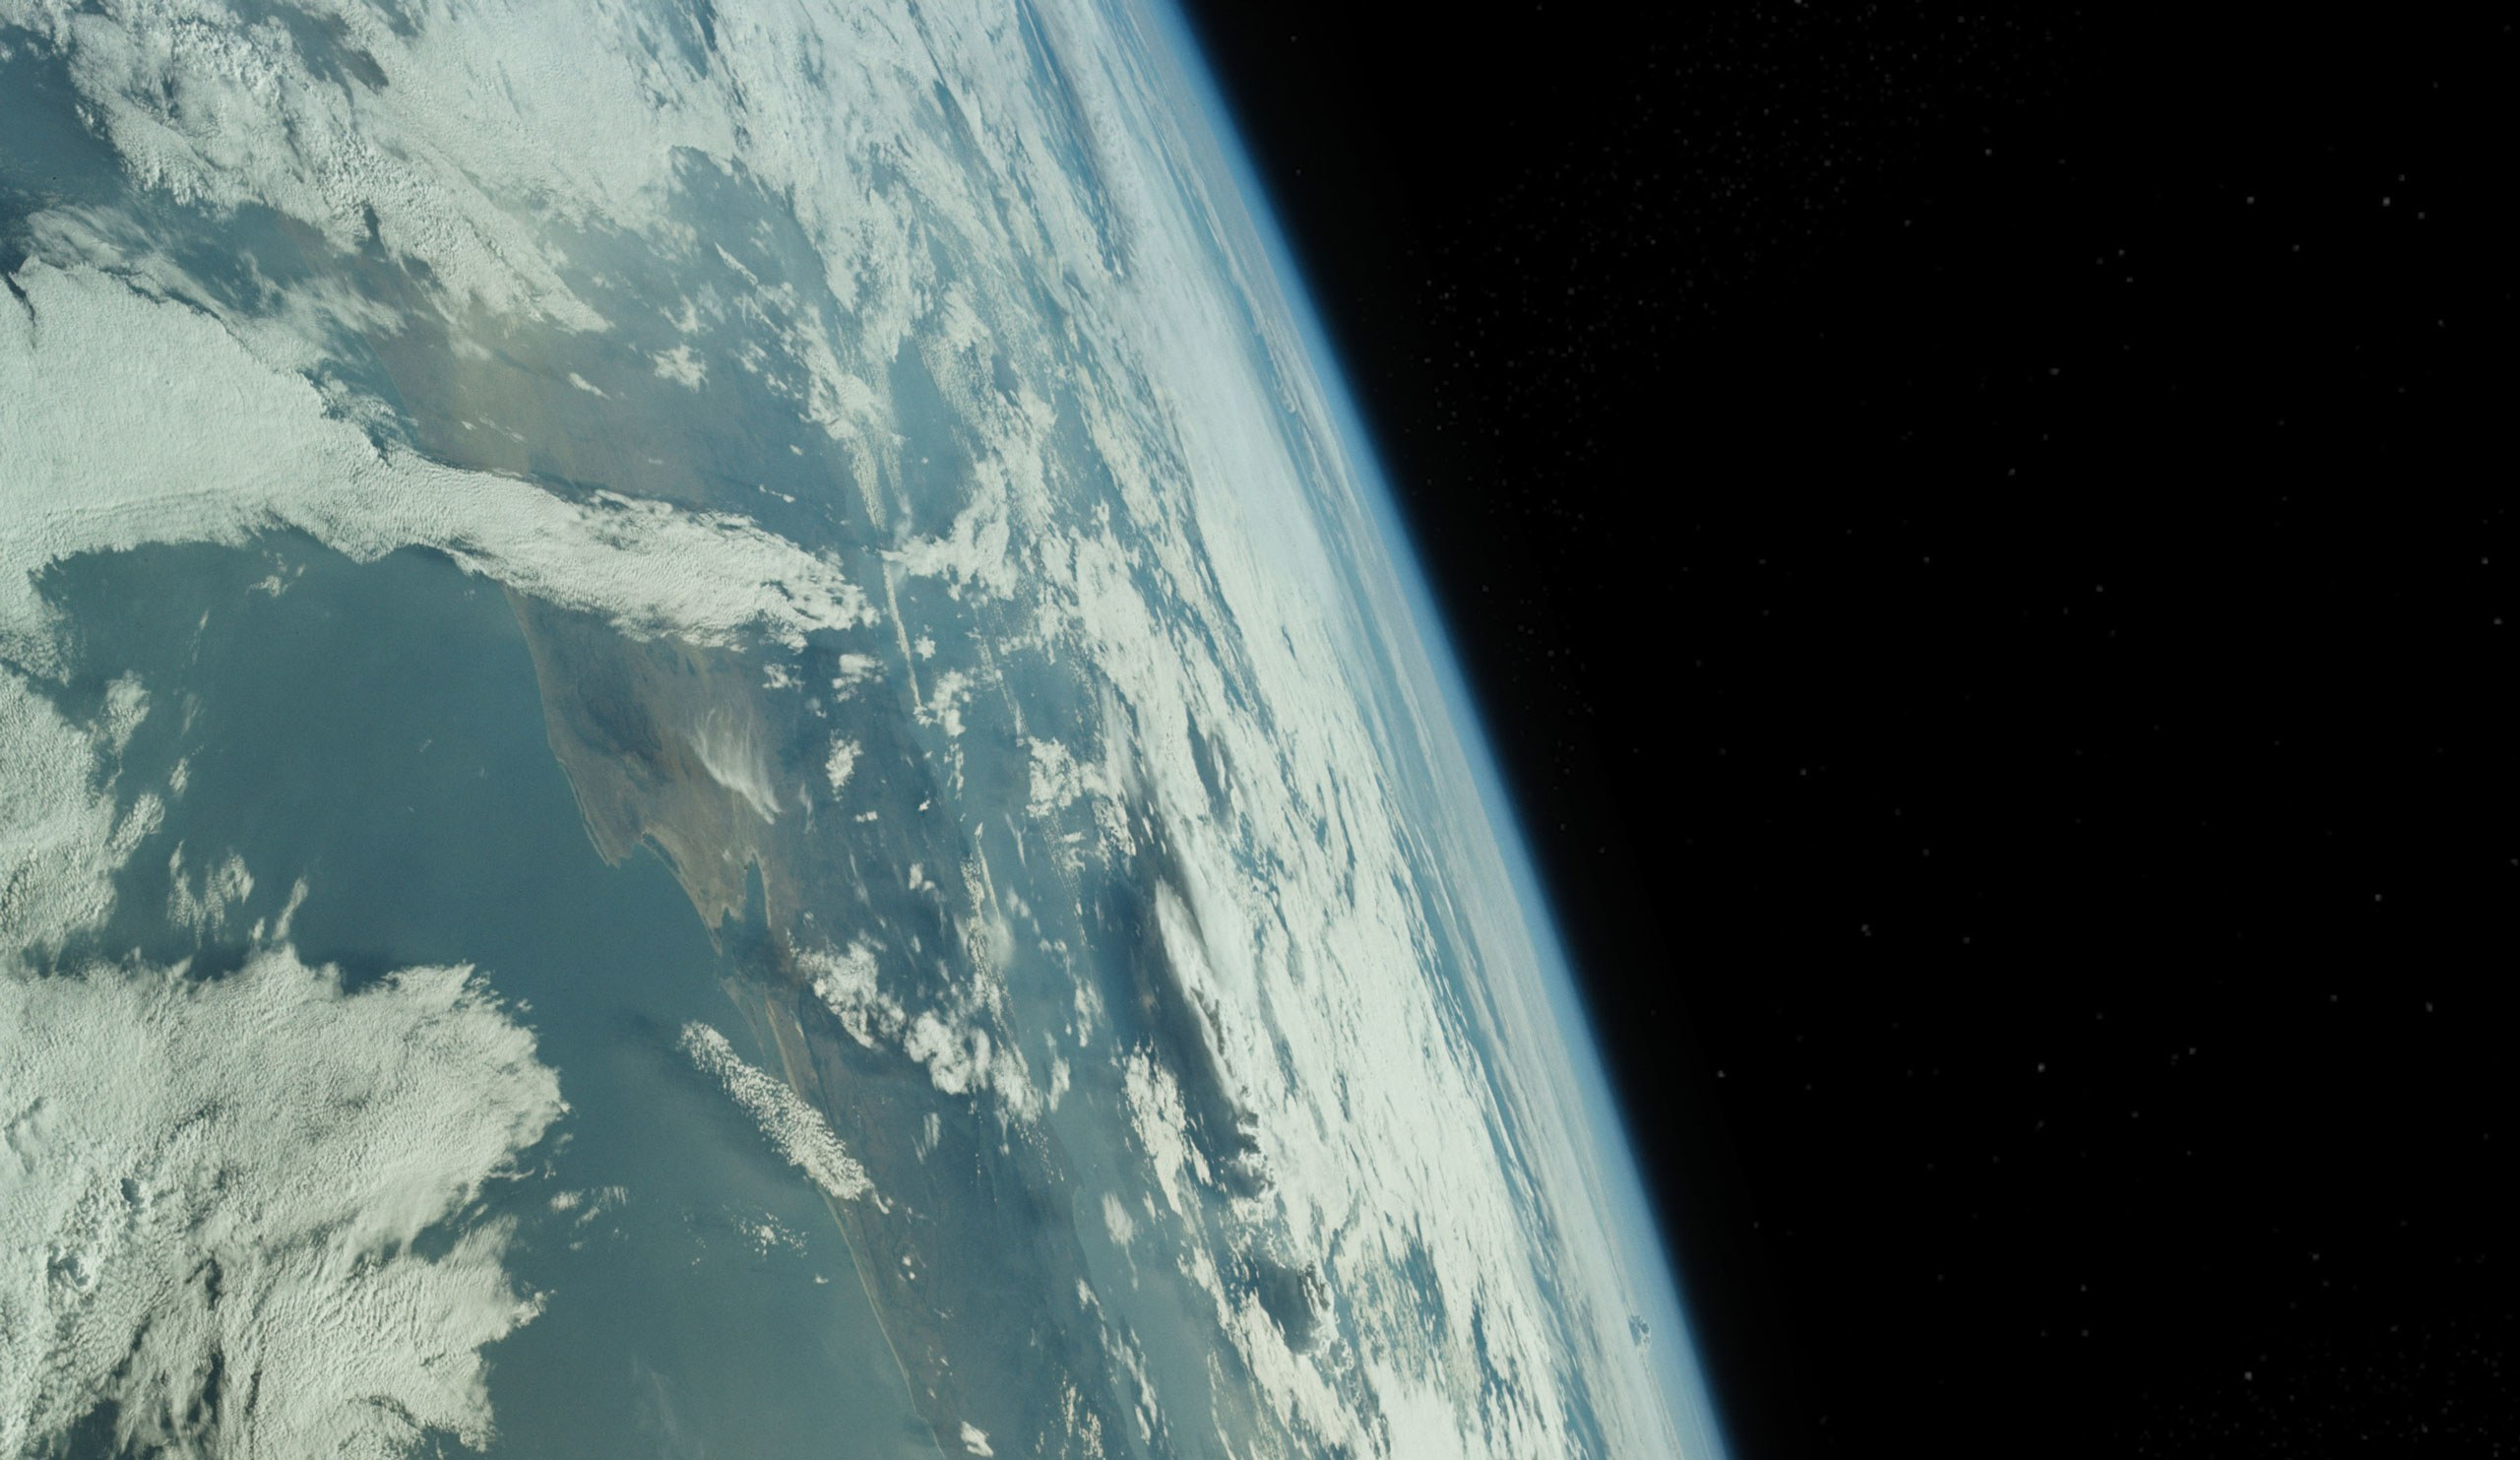 Fifty Years After Apollo 11, the View of Earth from the Moon.